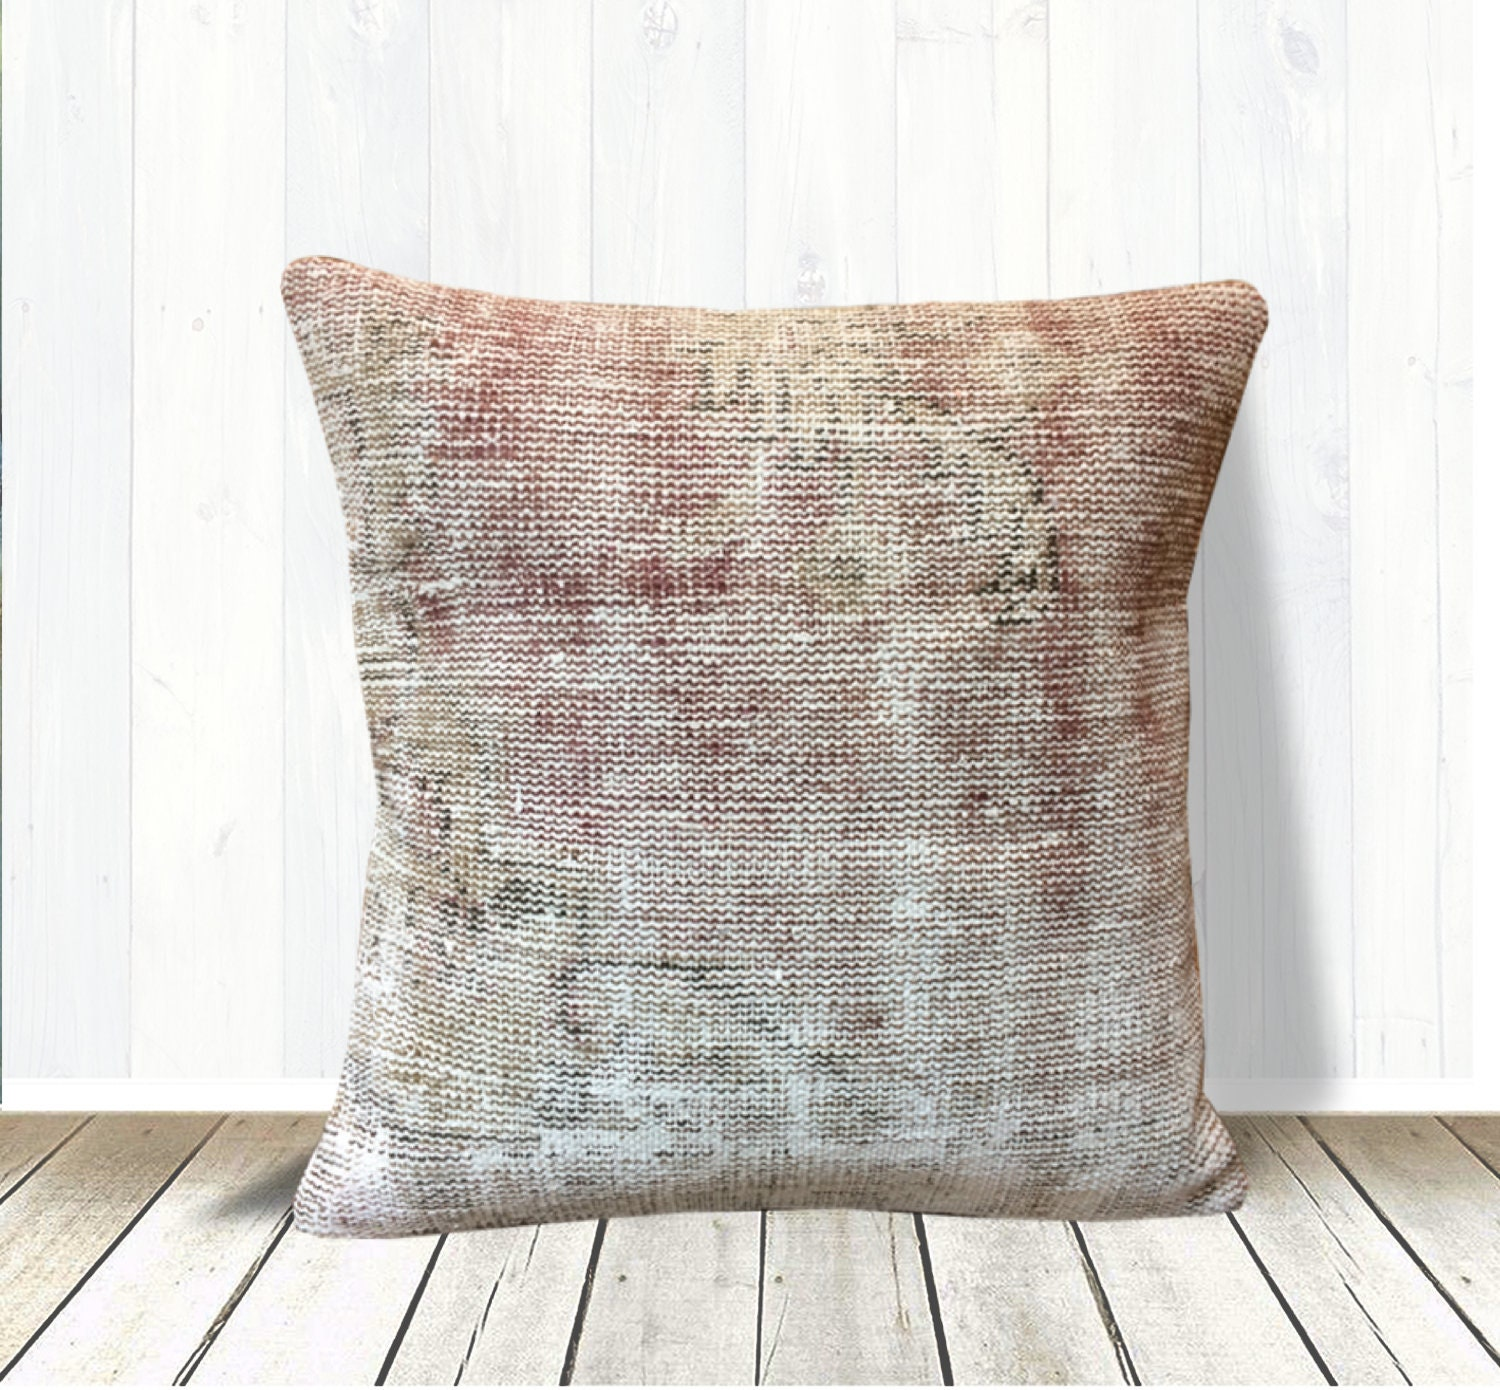 Beige Rose Gold Neutral Kilim Rug Pillow Cover 20x20 Large Farmhouse Pillow Throw Pillows Rustic Decor Couch Pillow Wool Cushion Cover